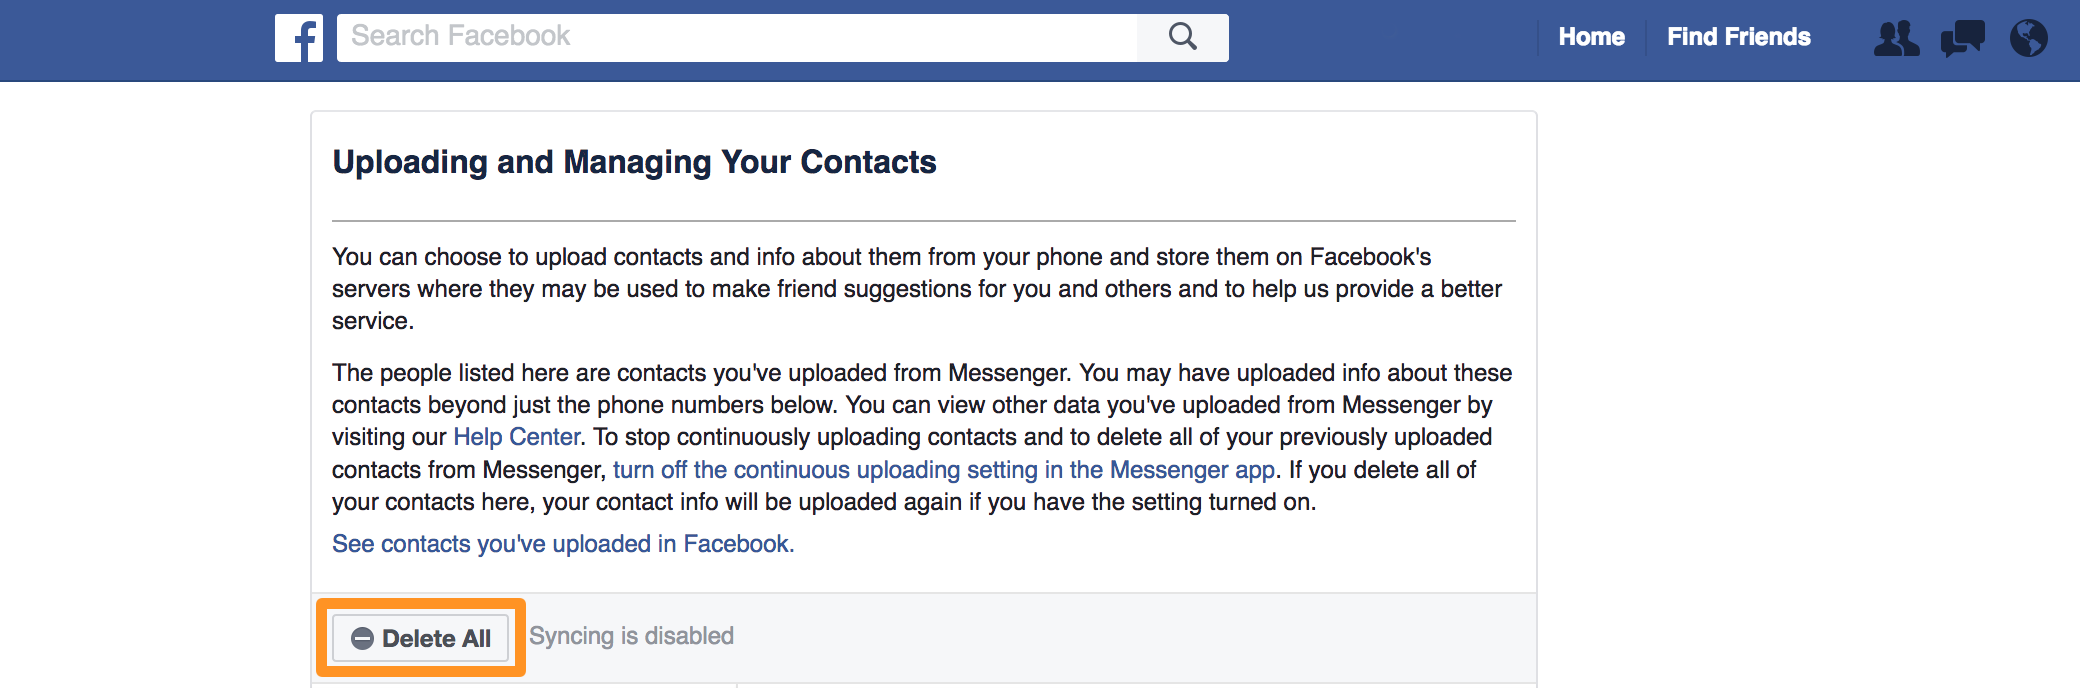 Facebook Messenger Contact Syncing